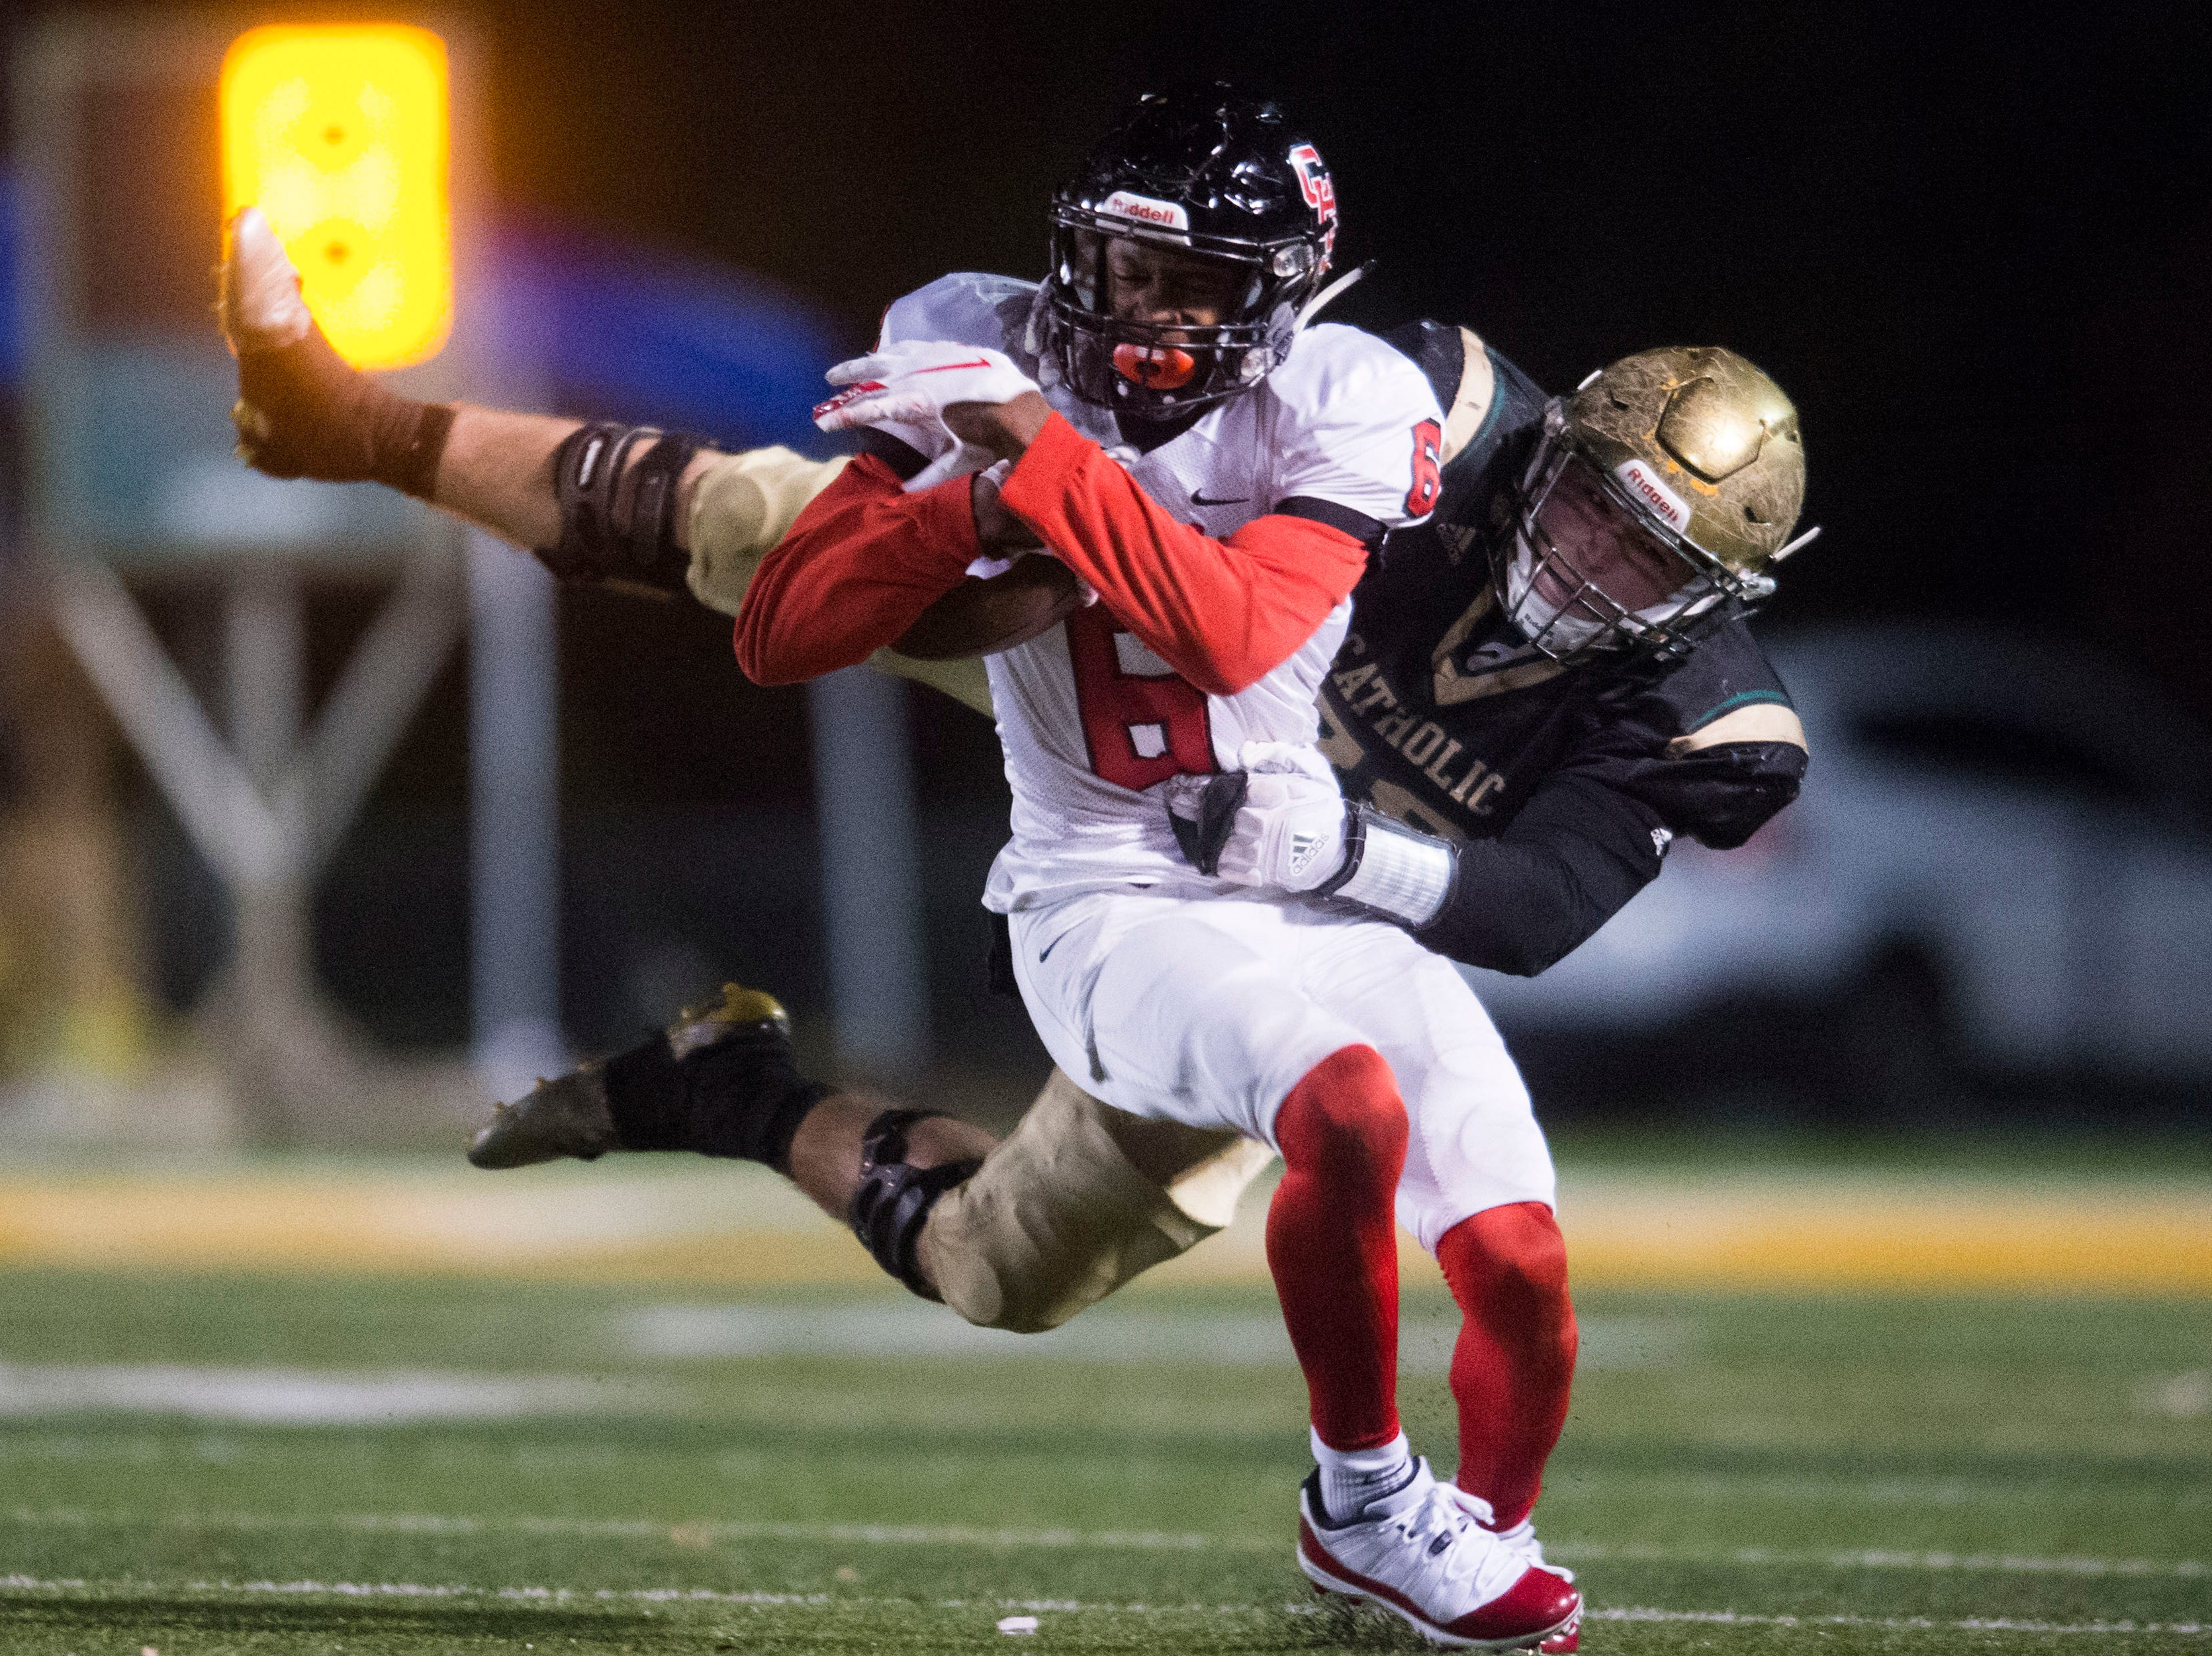 Central's Demetrien Johnson (6) is taken down by a Catholic player during a Class 5A semifinal game between Central at Catholic Friday, Nov. 23, 2018. Central defeated Catholic 24-19.